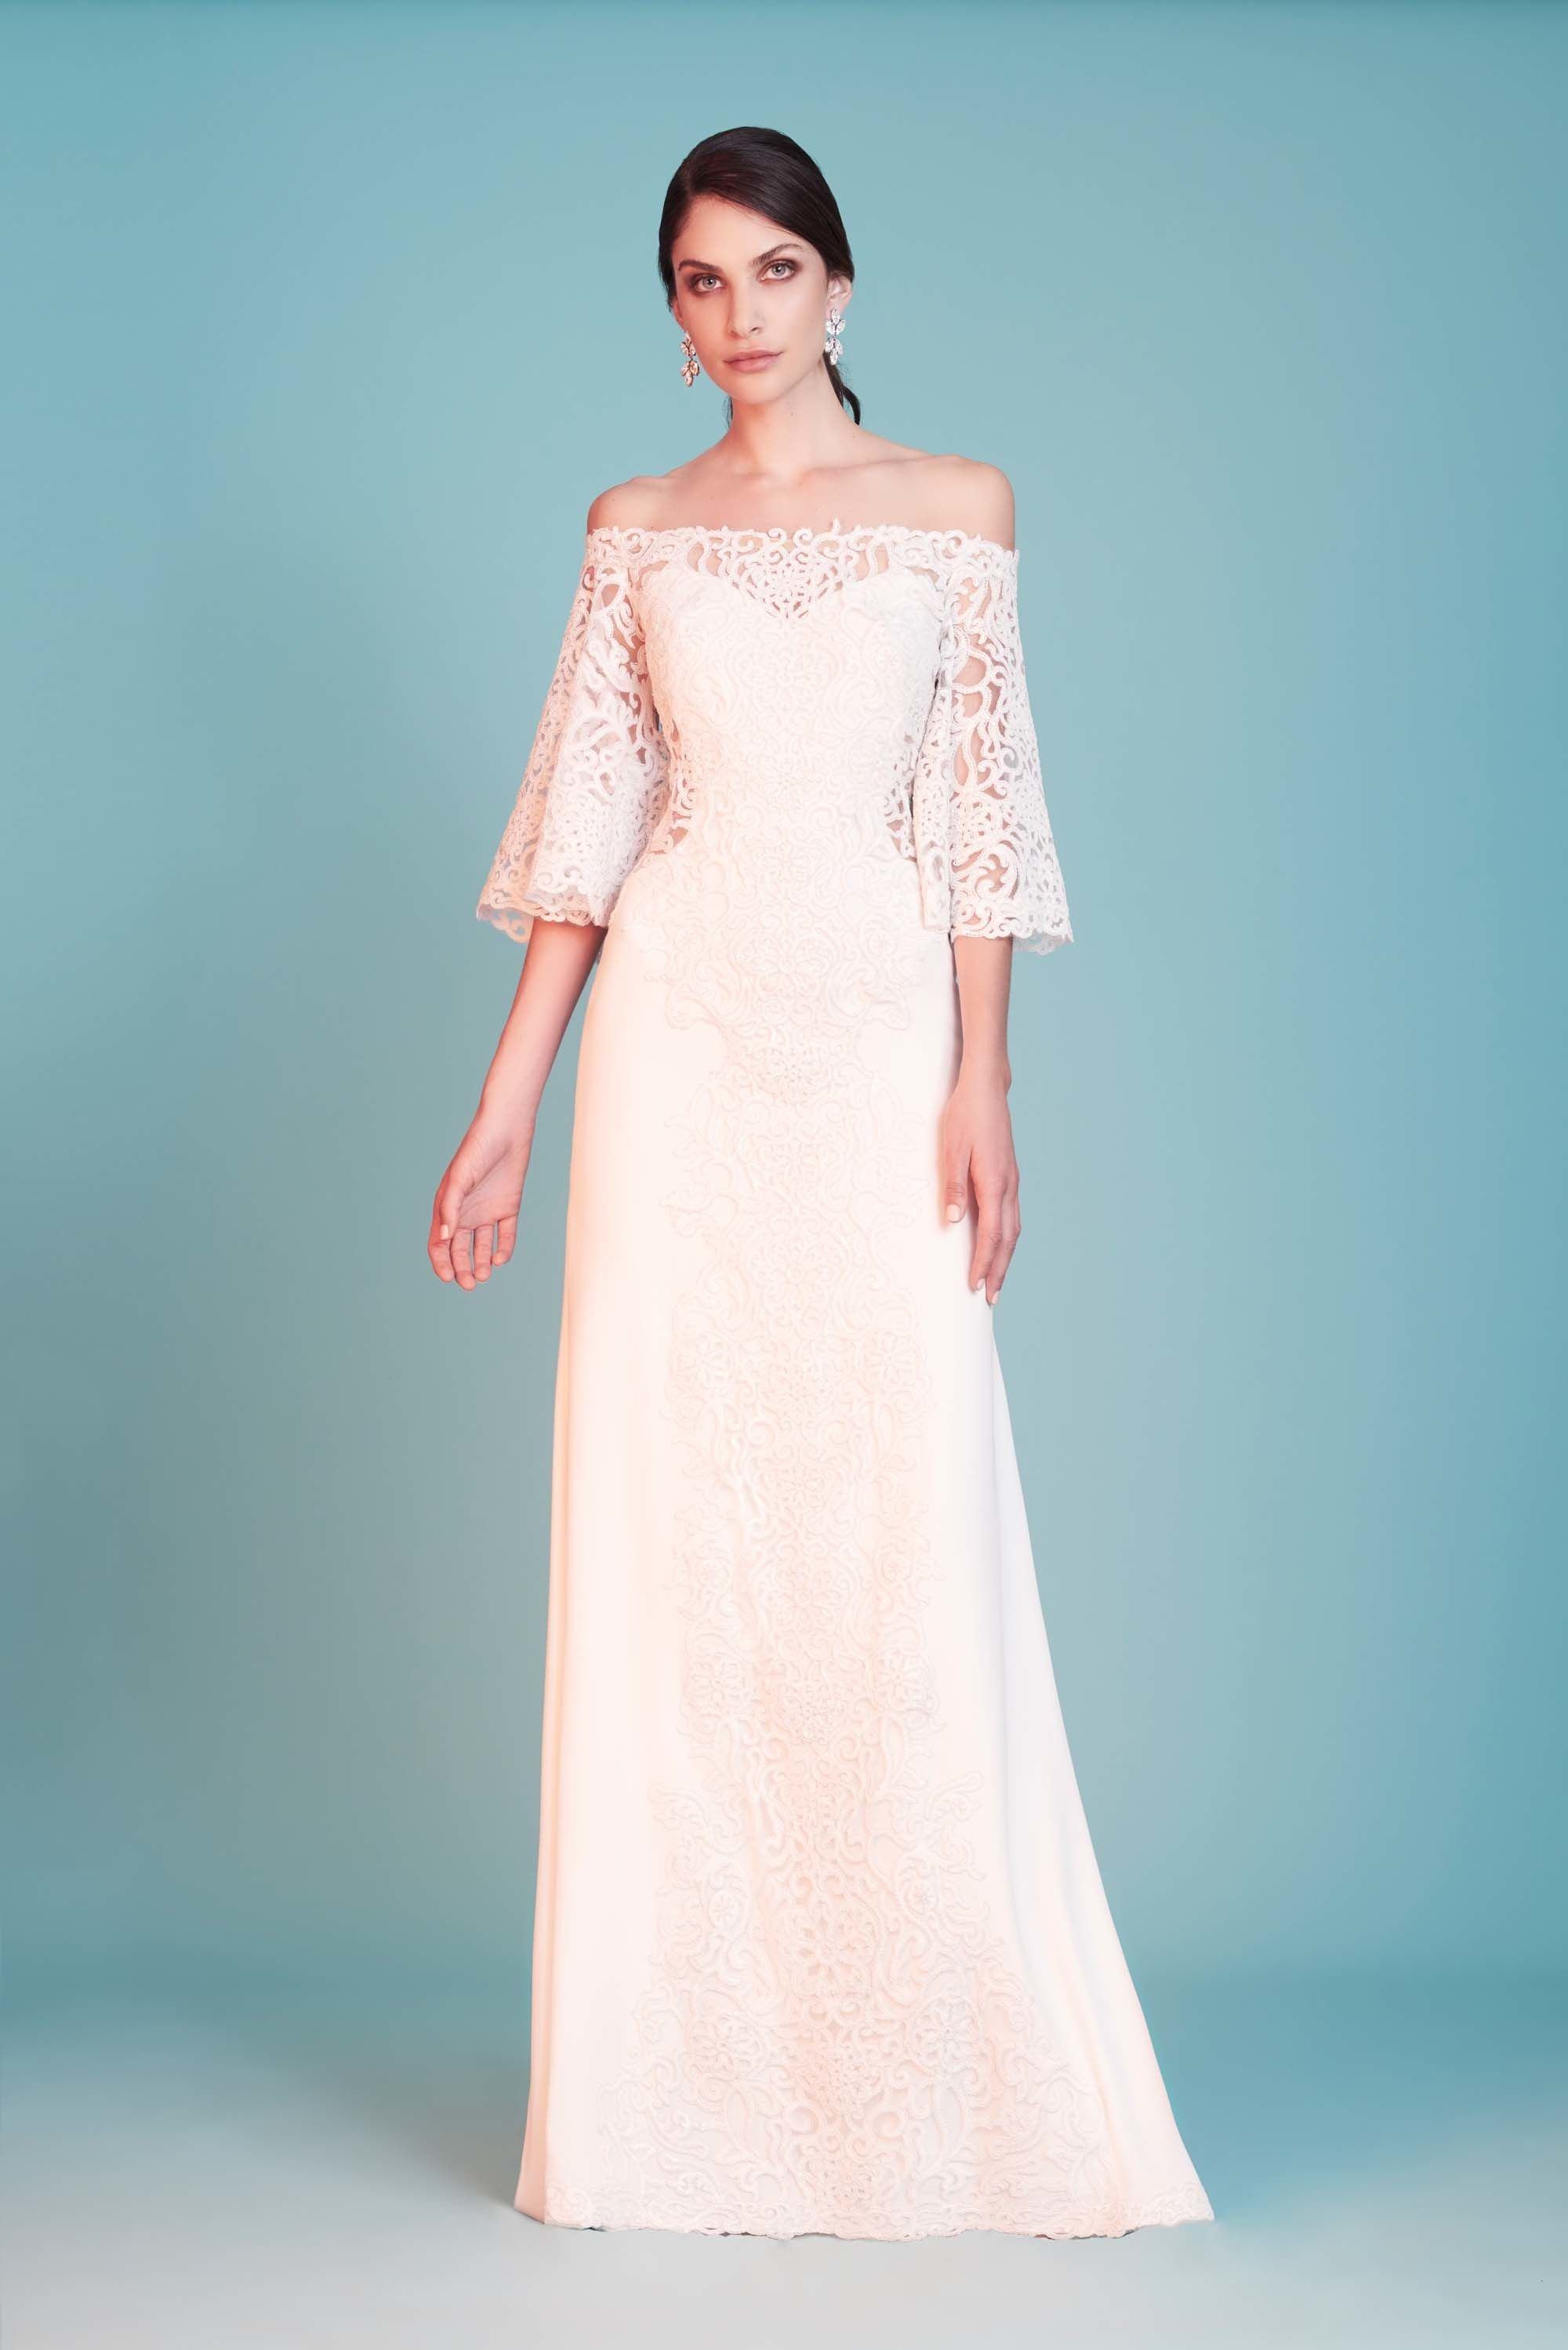 Tadashi Shoji Bridal Spring 2018 Collection Photos Vogue